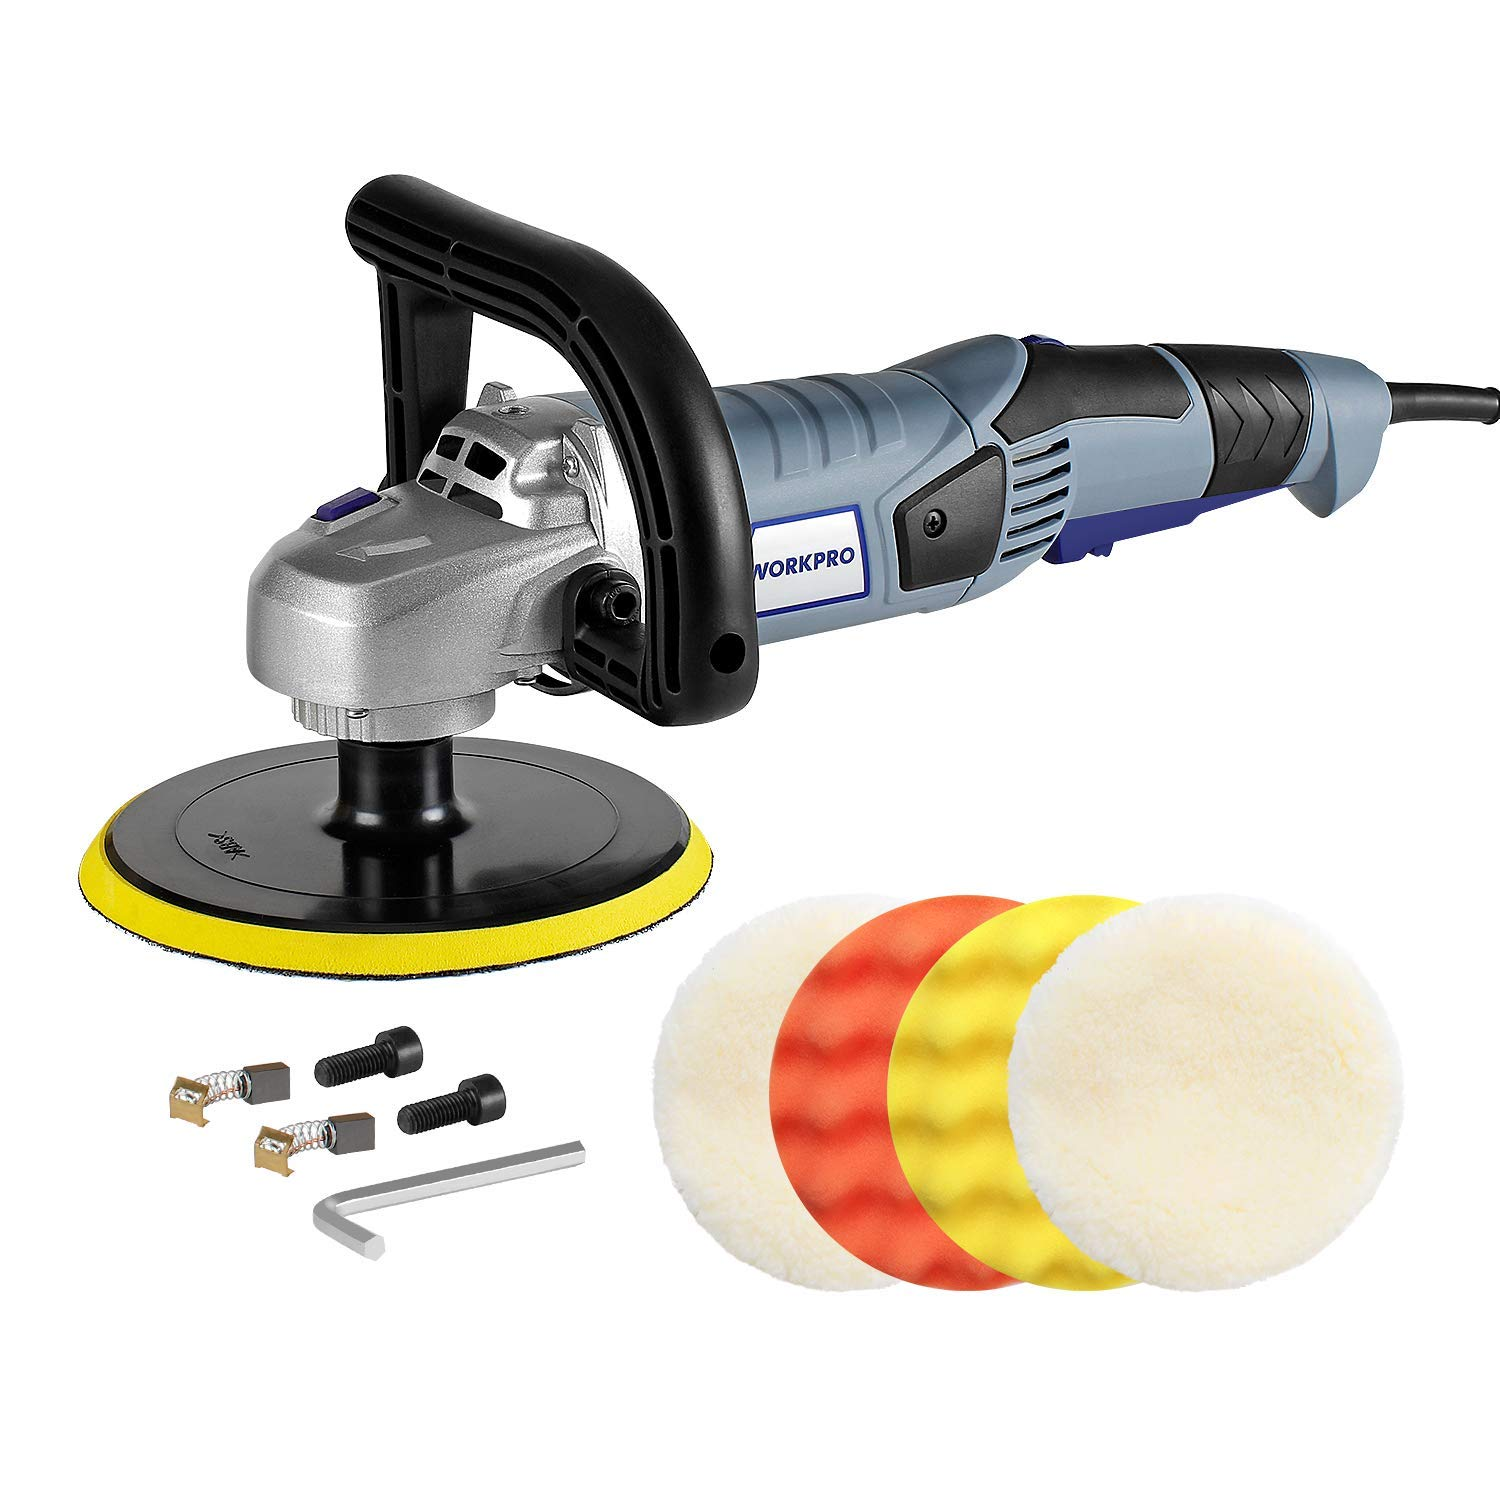 WORKPRO Car Polisher - 7-inch Variable Speed Buffer Waxer with 4 Buffing and Polishing Pads, Detachable Handle, Ideal For Car Sanding, Polishing, Waxing, Sealing Glaze by WORKPRO